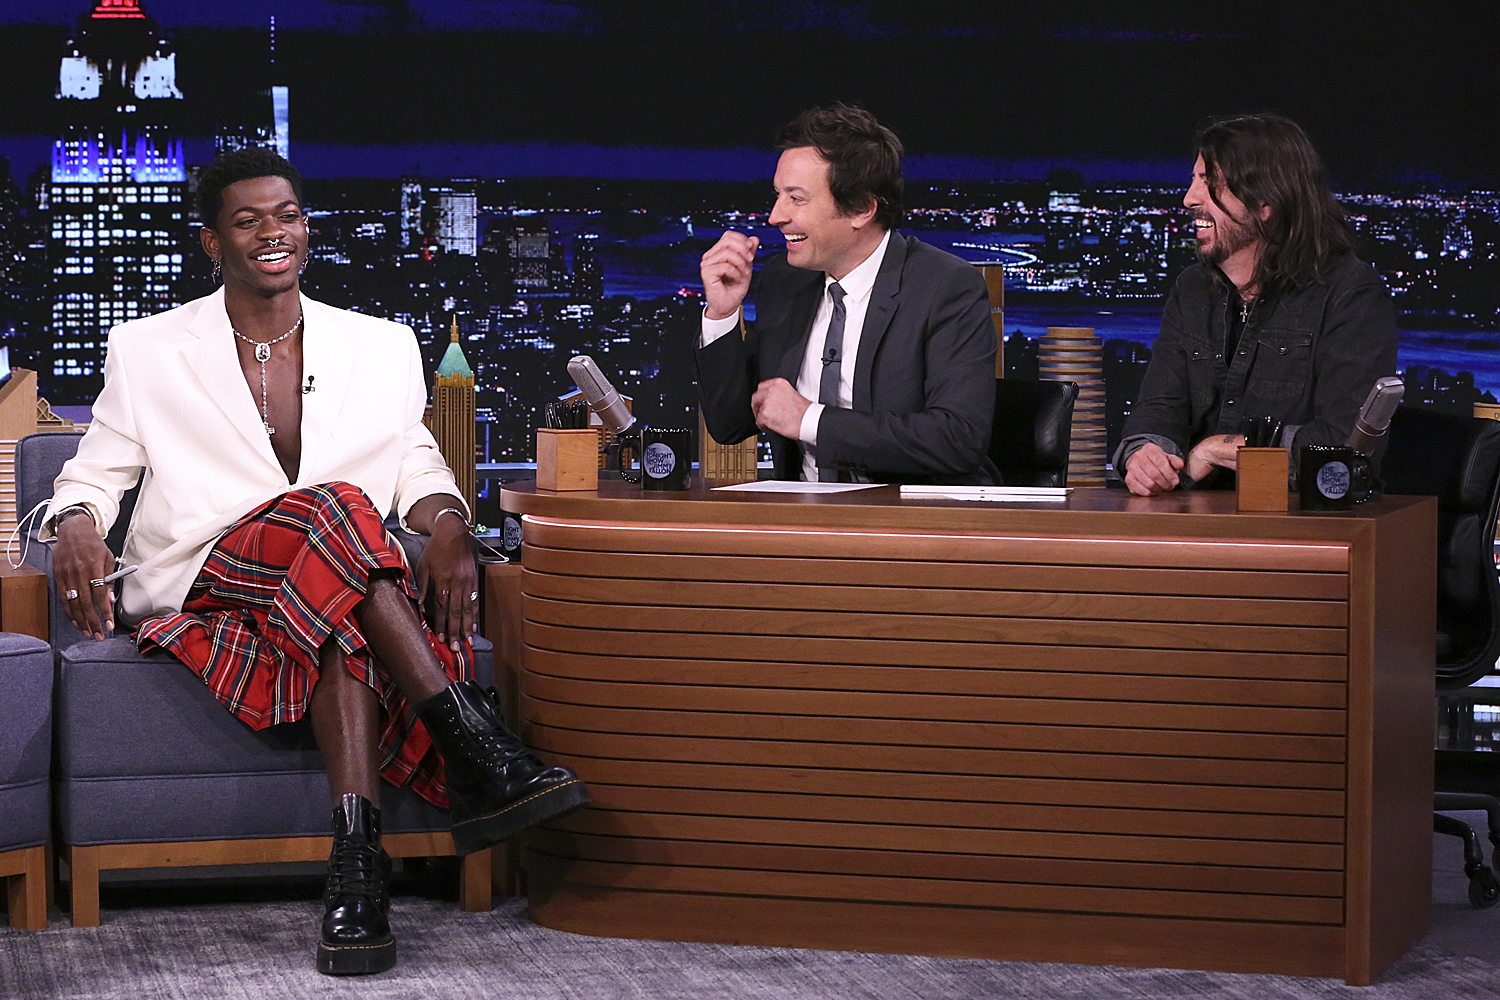 Lil Nas X during an interview with host Jimmy Fallon and musician Dave Grohl on 'THE TONIGHT SHOW STARRING JIMMY FALLON'